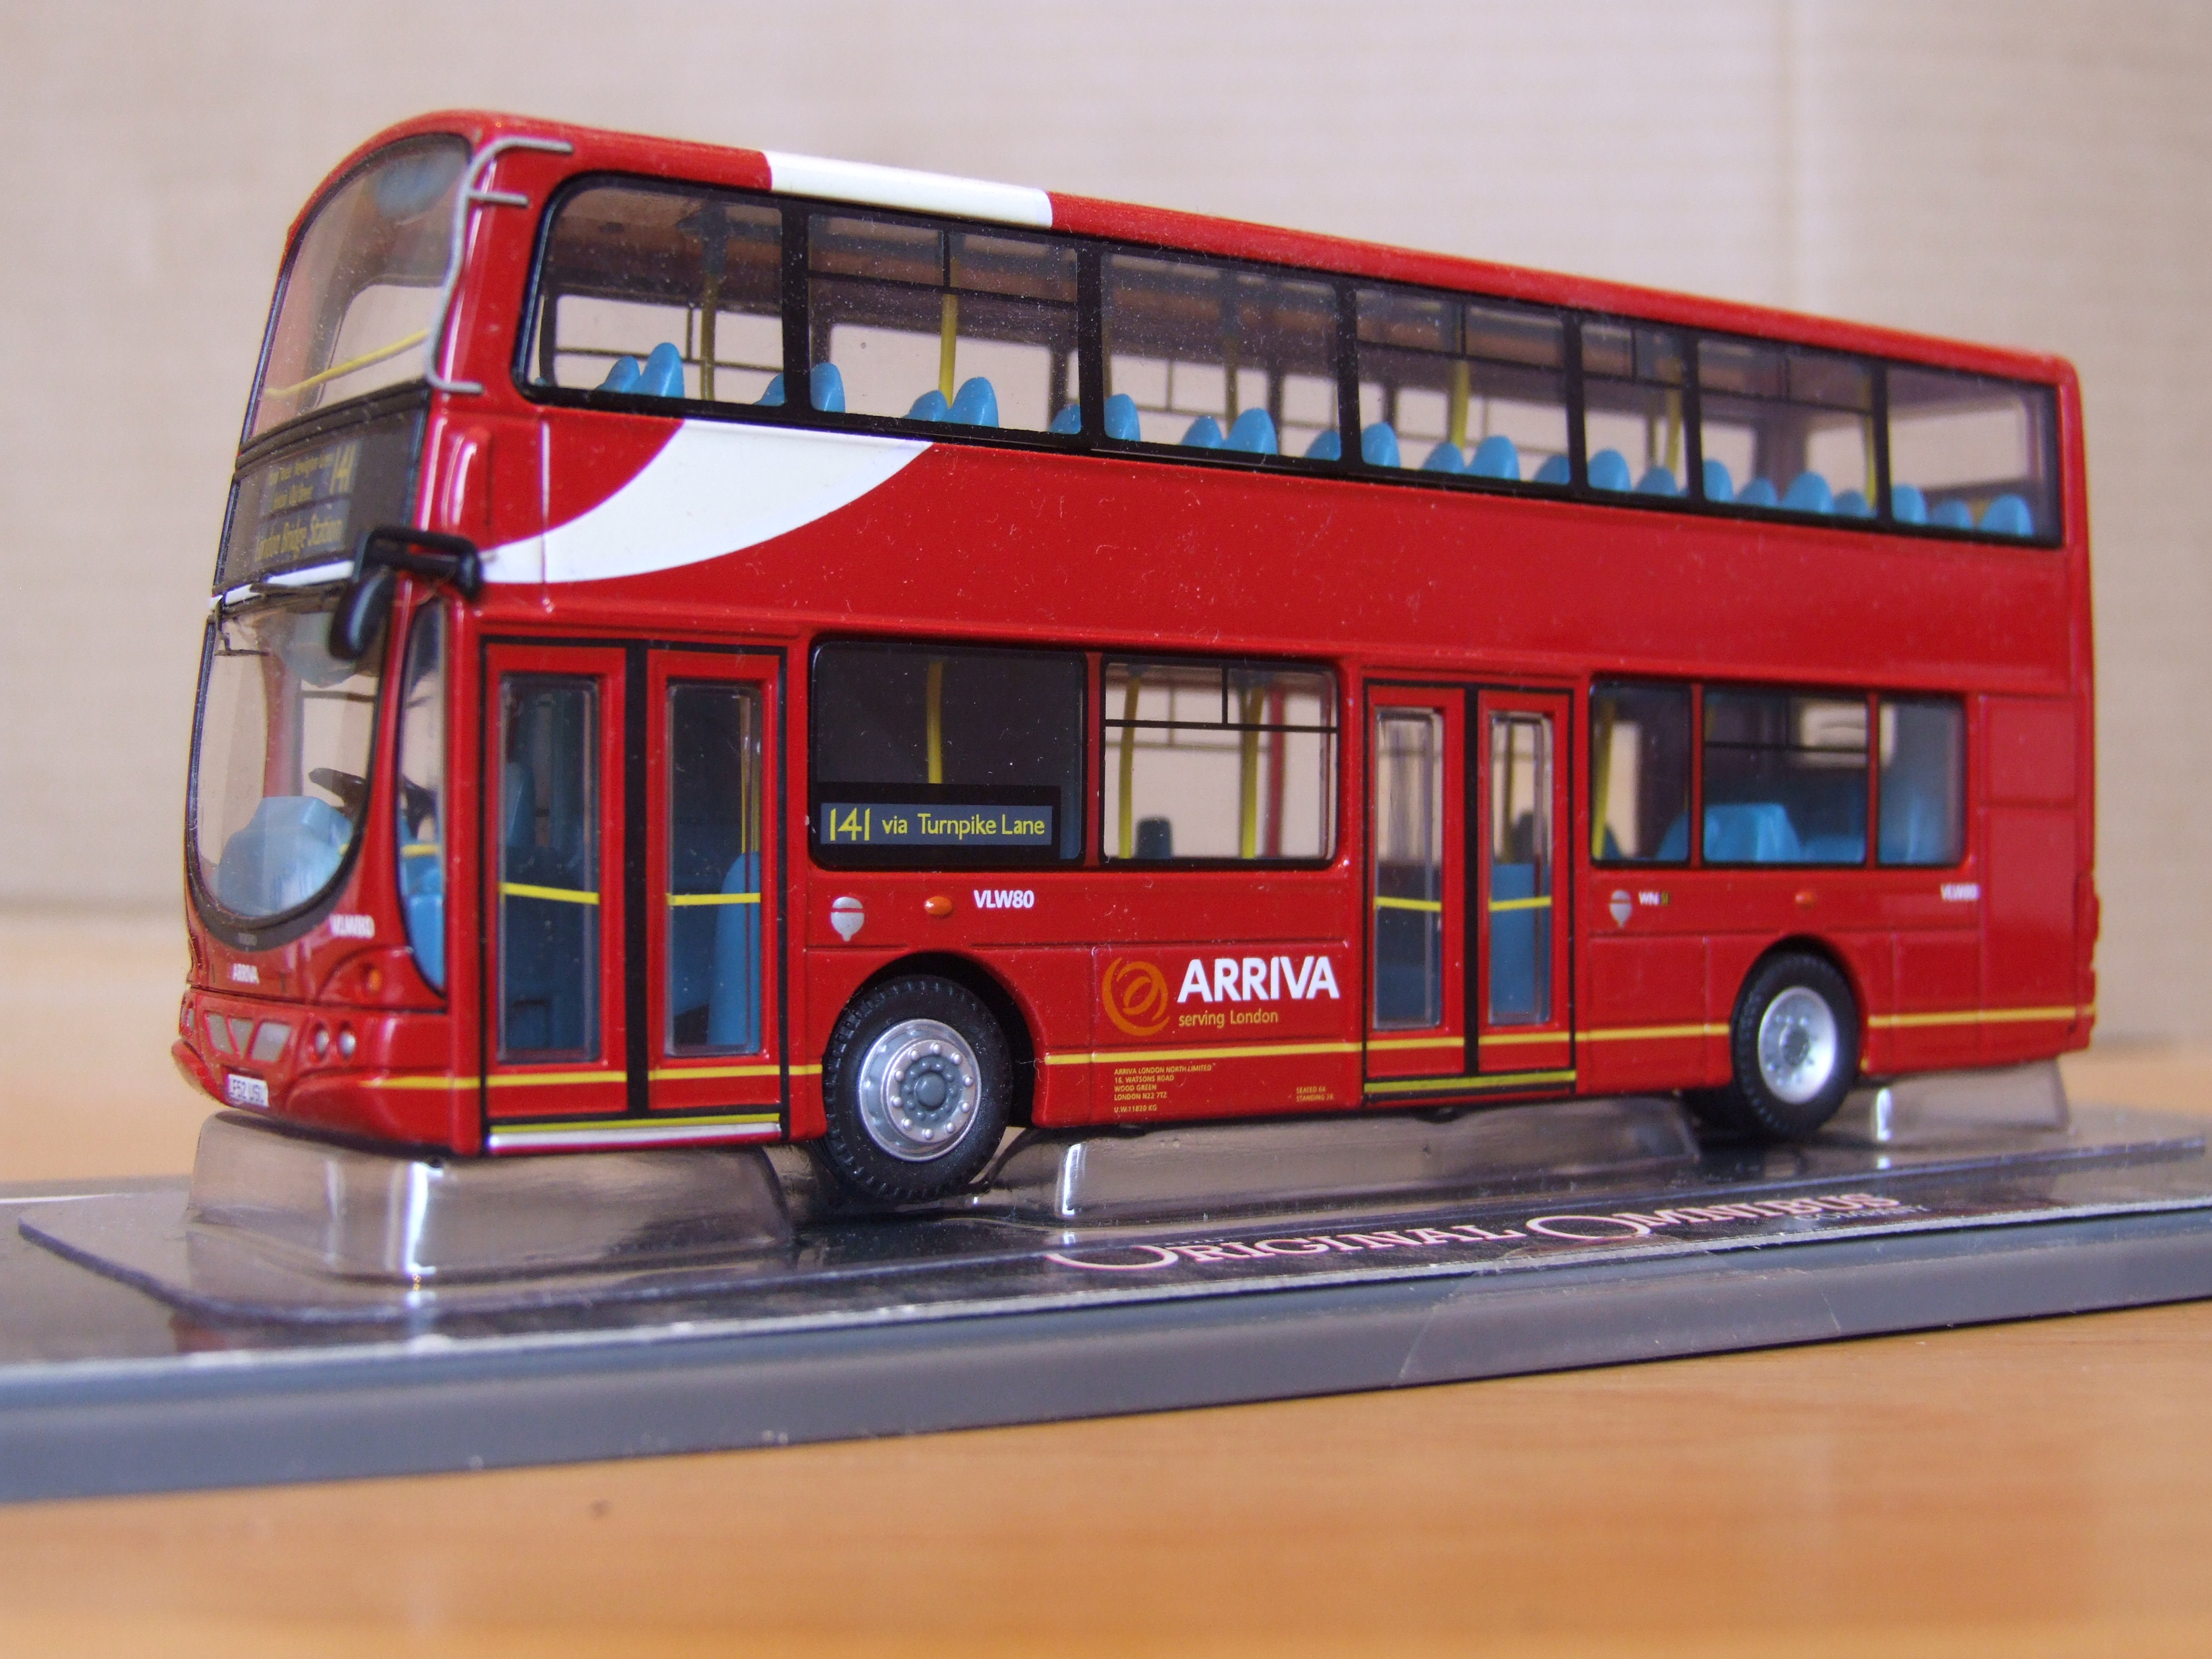 toy buses with File Wright Eclipse Bus Model on Sumo Hd Systems Selected Foton in addition Apparently Riding A Hobby Horse Is A Real Sport In Scandinavia together with Cta moreover File Wright Eclipse bus model further File Atheist Bus Model.